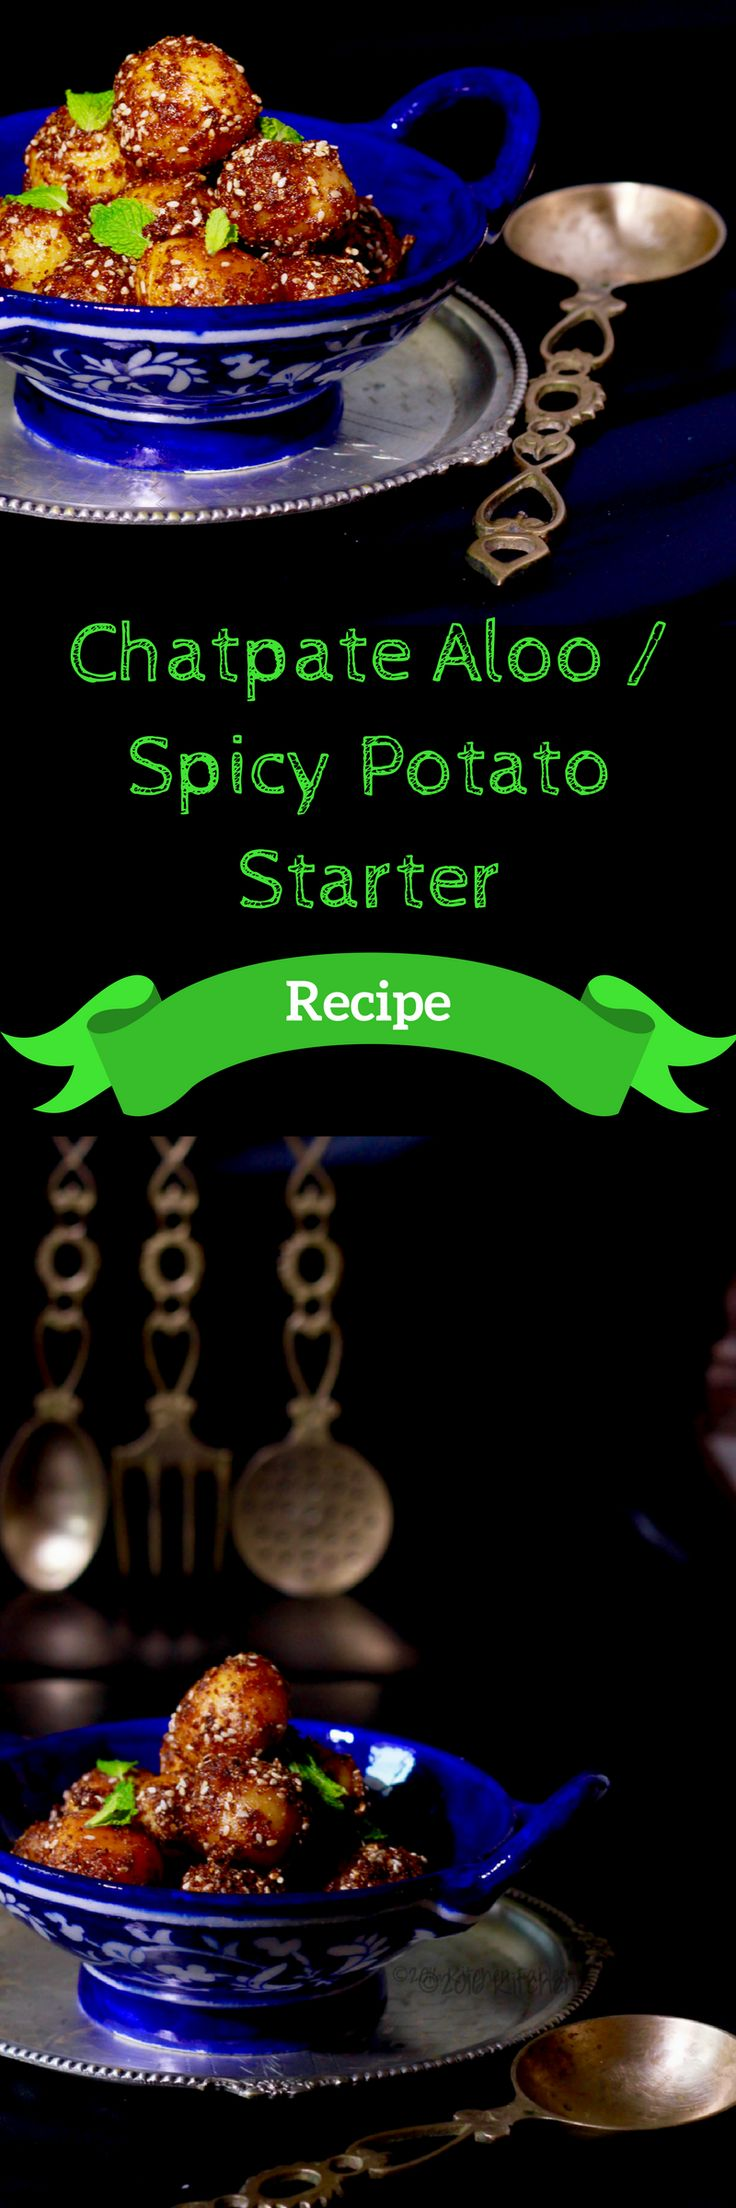 Recipe of Spicy Potato Starter , easy and quick to make.